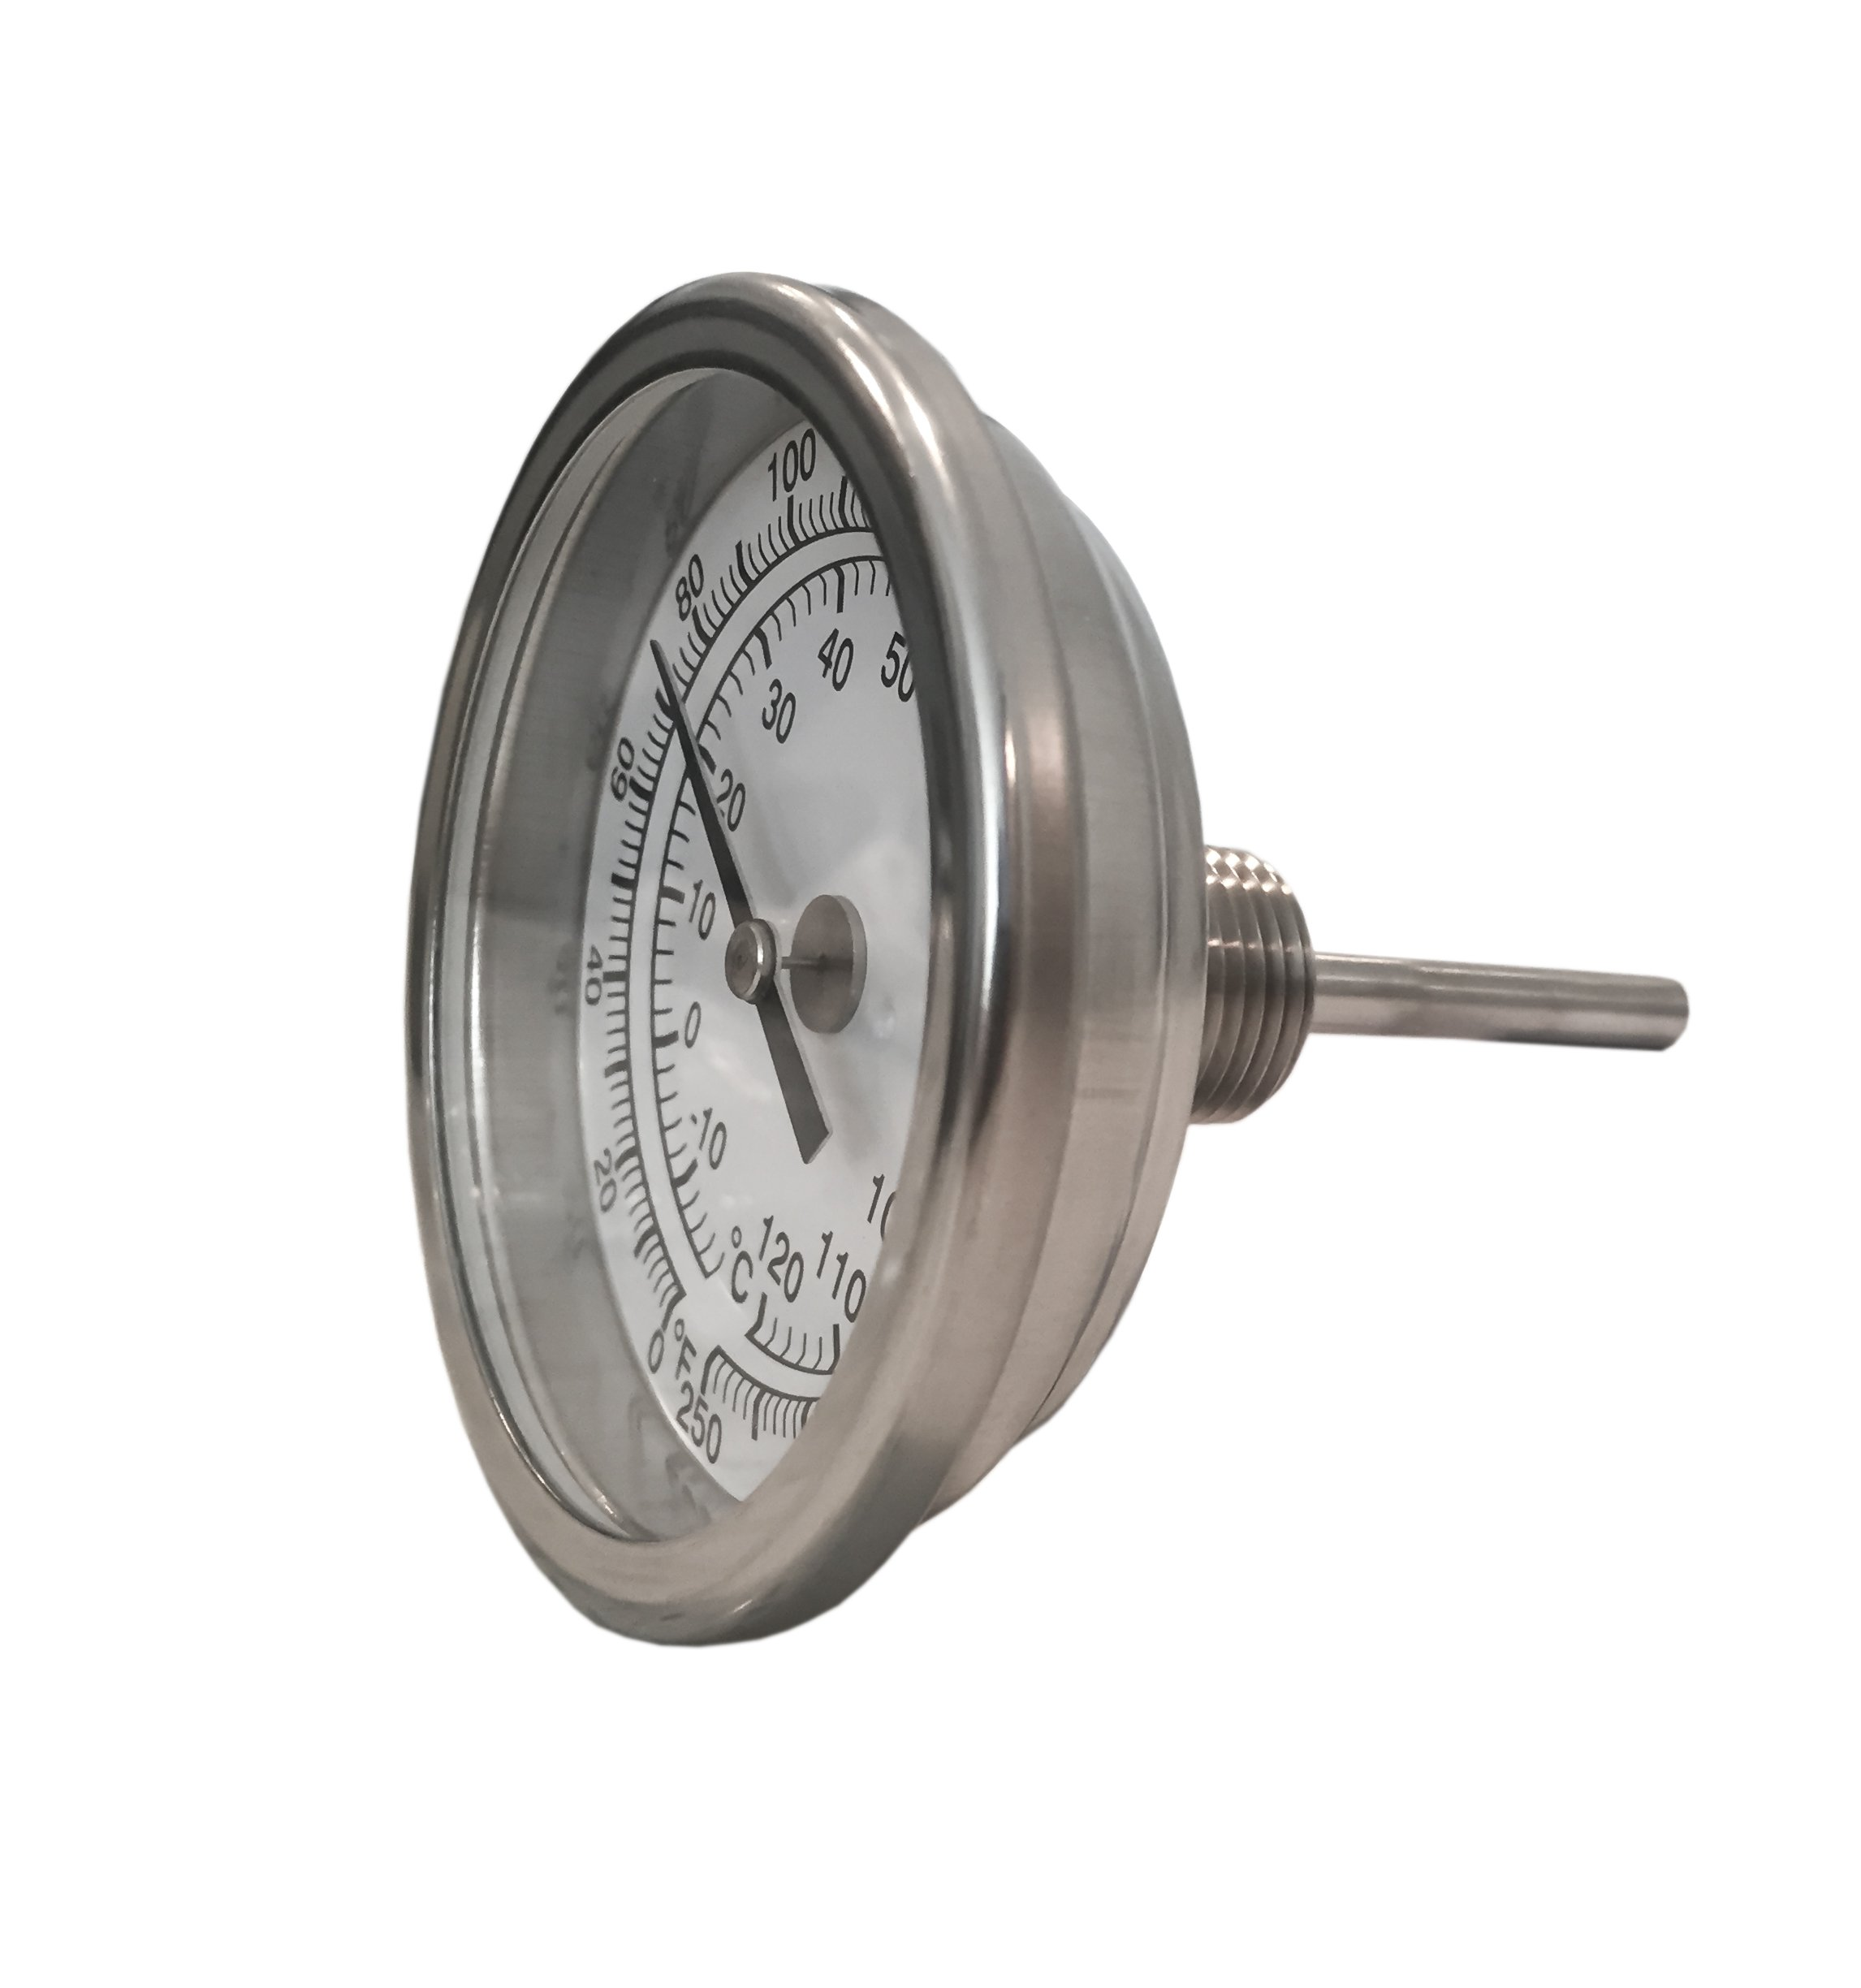 CNSG 3'' Dial x 2.5'' Stem Brewing/Distilling Thermometer with 1/2'' NPT